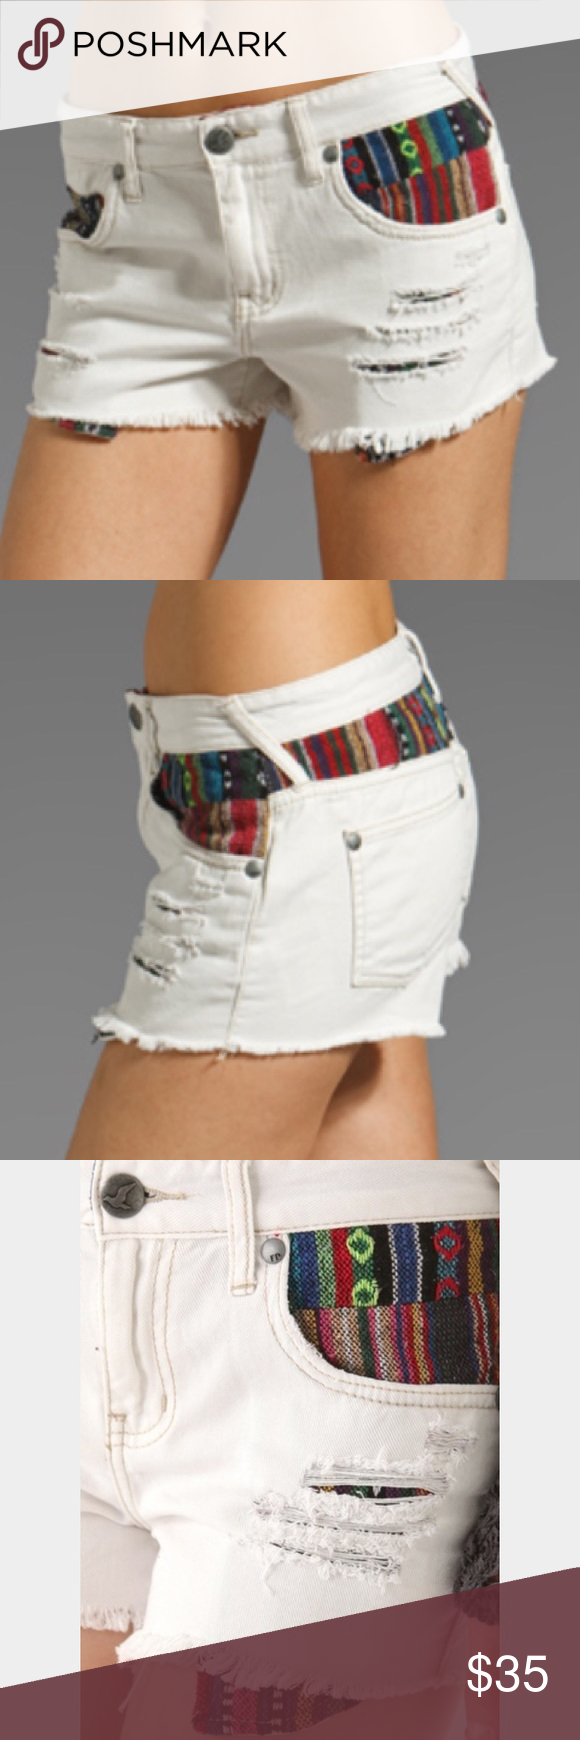 ❤️ NWT! Free People Baja Shorts  🆕🎉 NWT! Free People Baja Shorts in White. Perfect for summer.  Size 27, never been worn!!! SUPER CUTE! Bundle and Save 10%! 🥂 Free People Shorts Jean Shorts